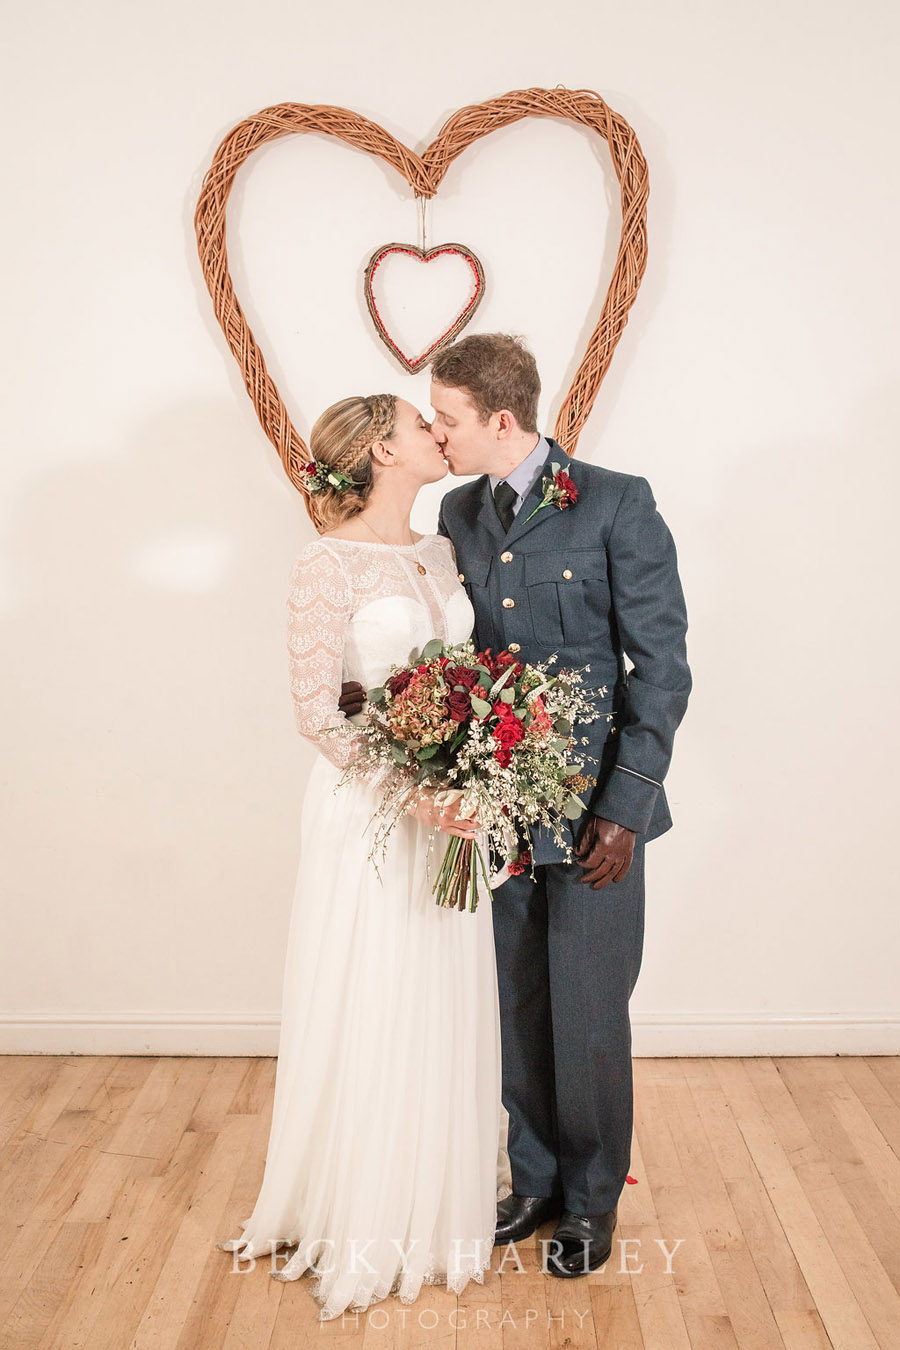 A massive ball of mistletoe for a beautifully styled, elegant winter wedding. Images by Becky Harley Photography (41)